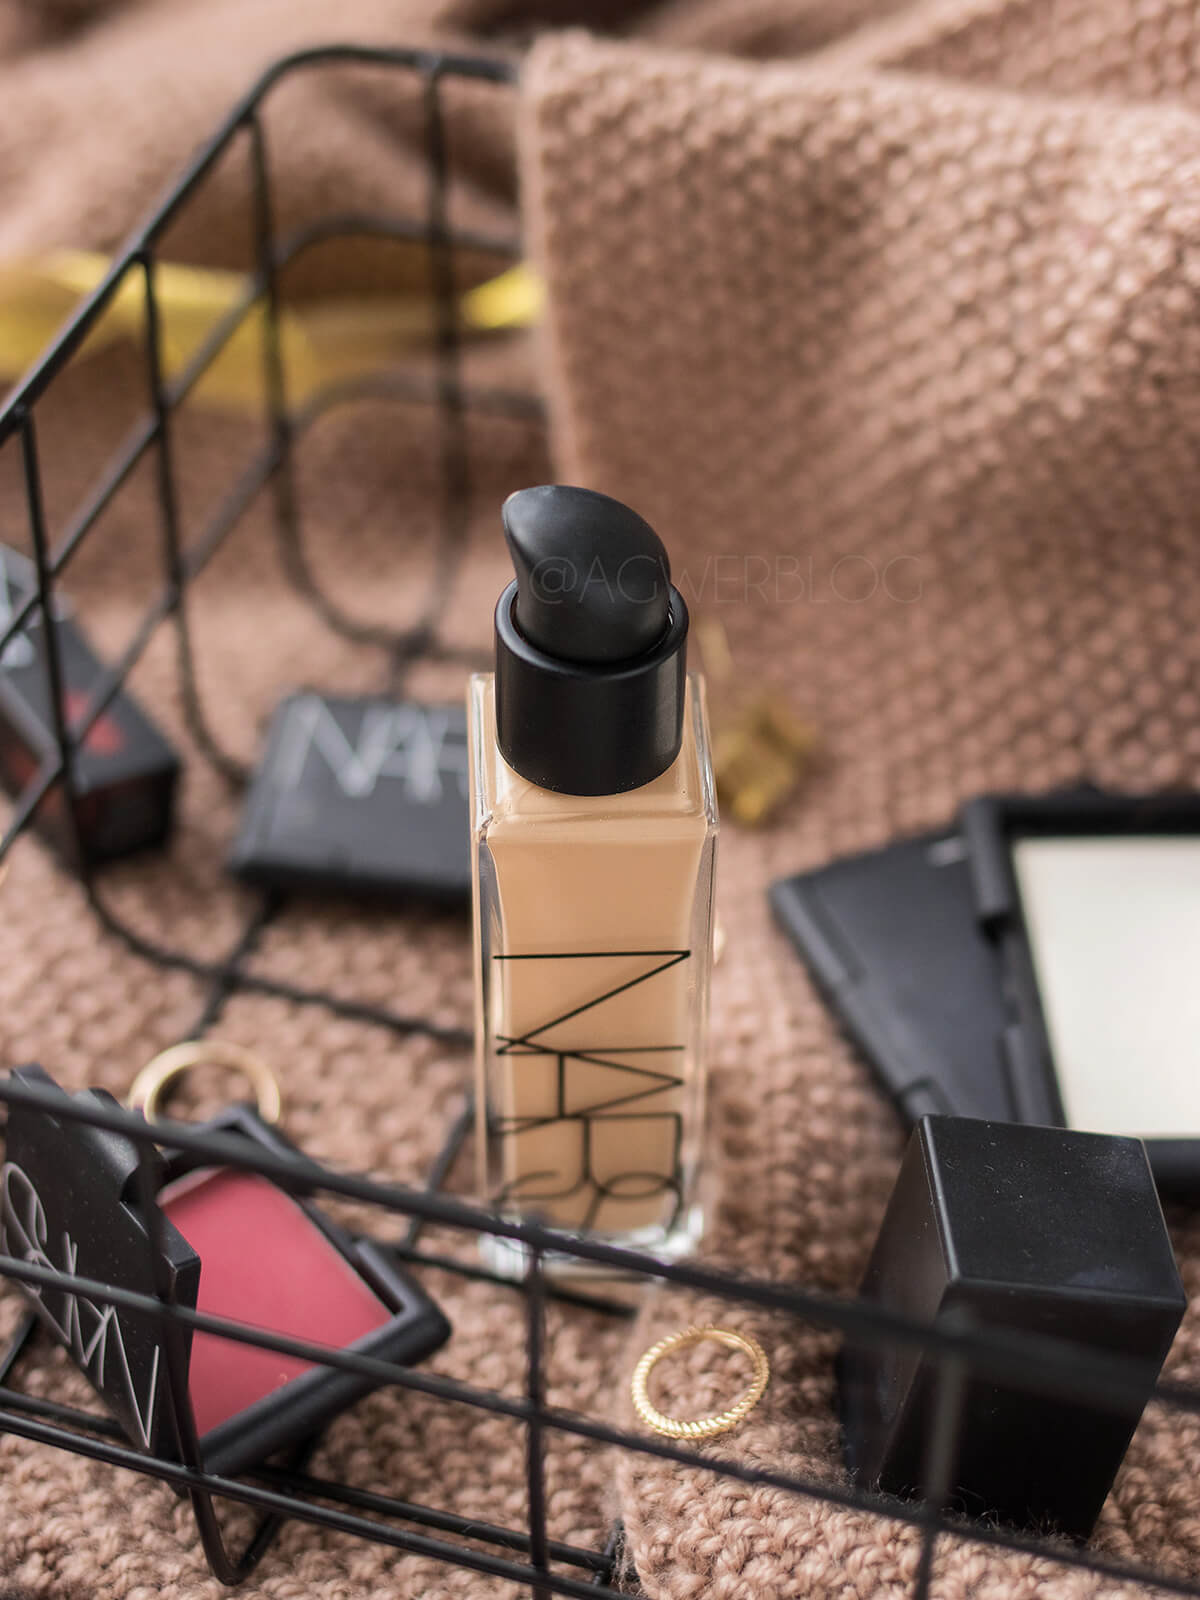 NARS, Natural Radiant Longwear Foundation opinie